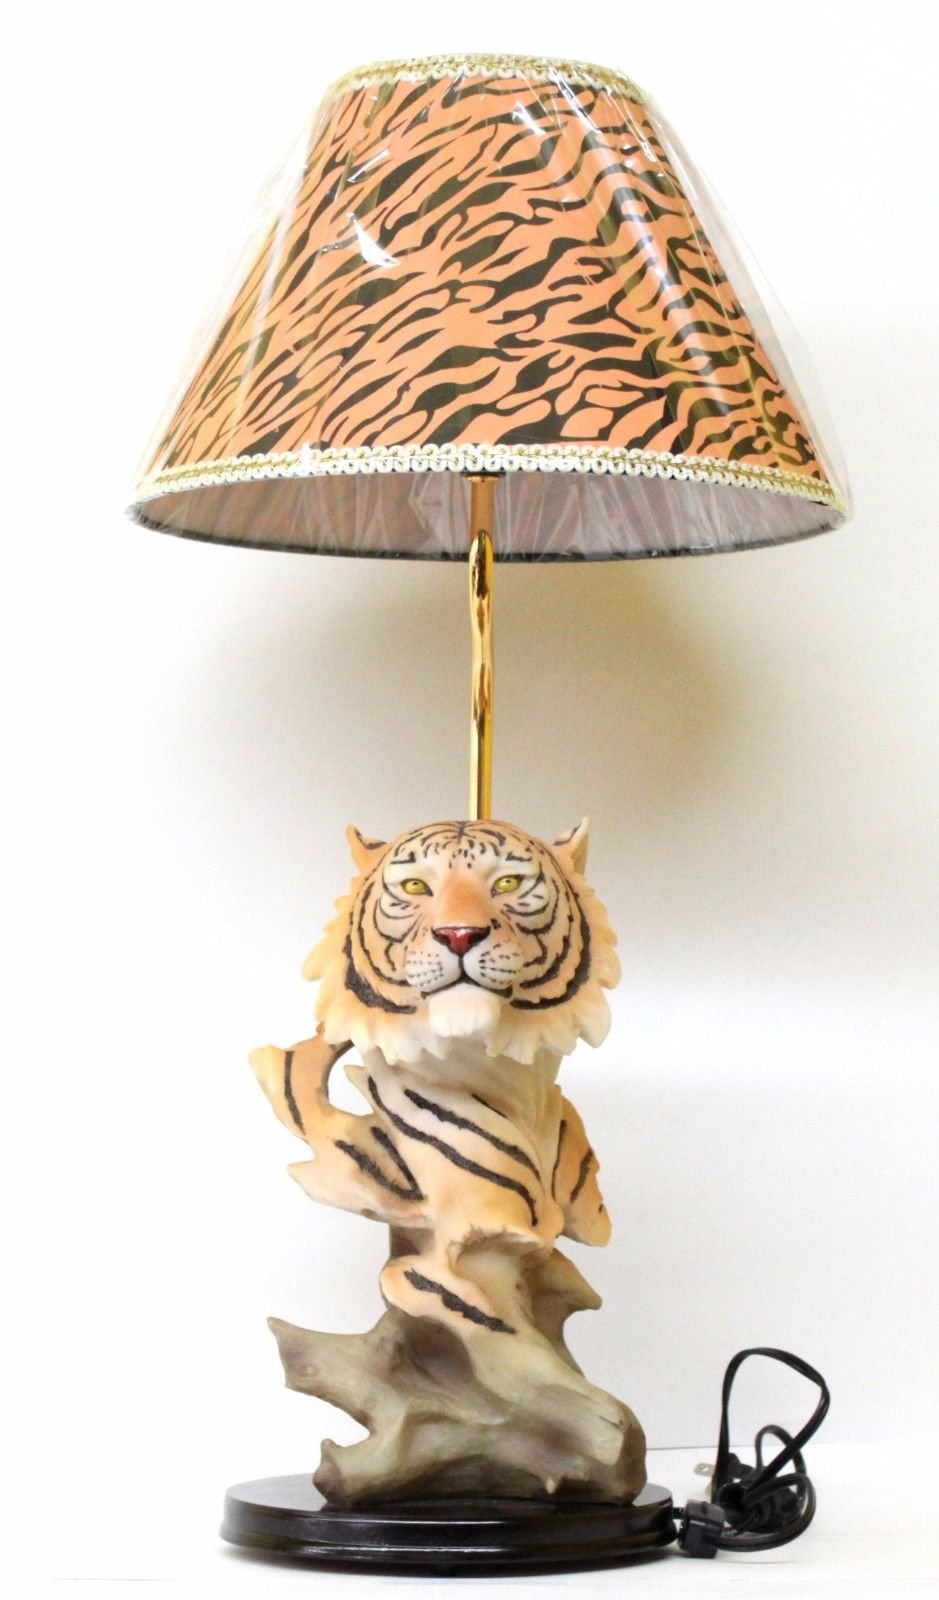 Tiger Statue Lamp with Tiger Striped Print Lamp Shade - Safari Animal Home Decor